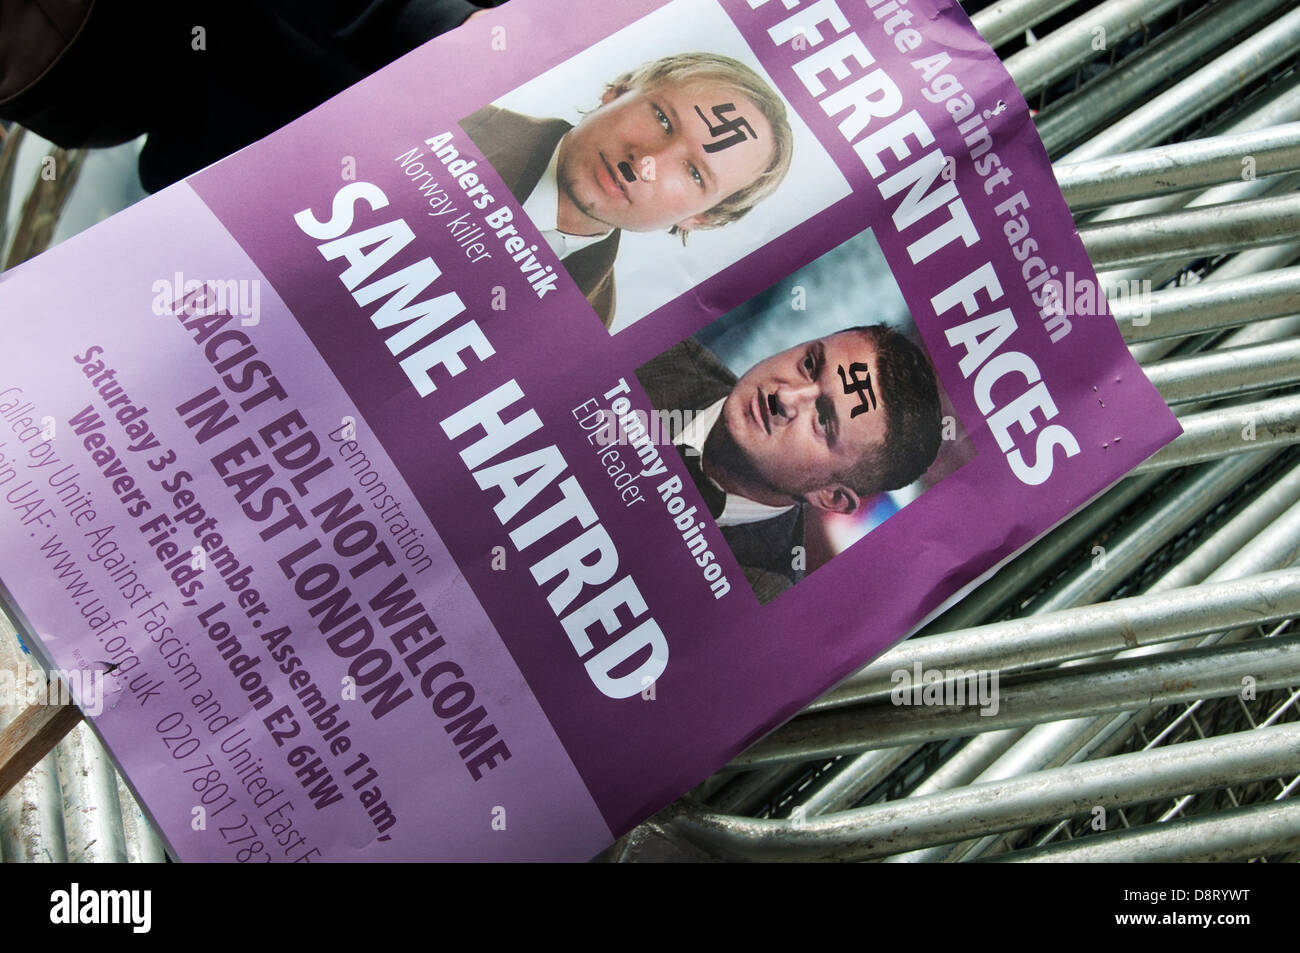 Poster for an anti racist rally to be held in September, with swastikas added to photos of Breivik and Tommy Robinson - Stock Image